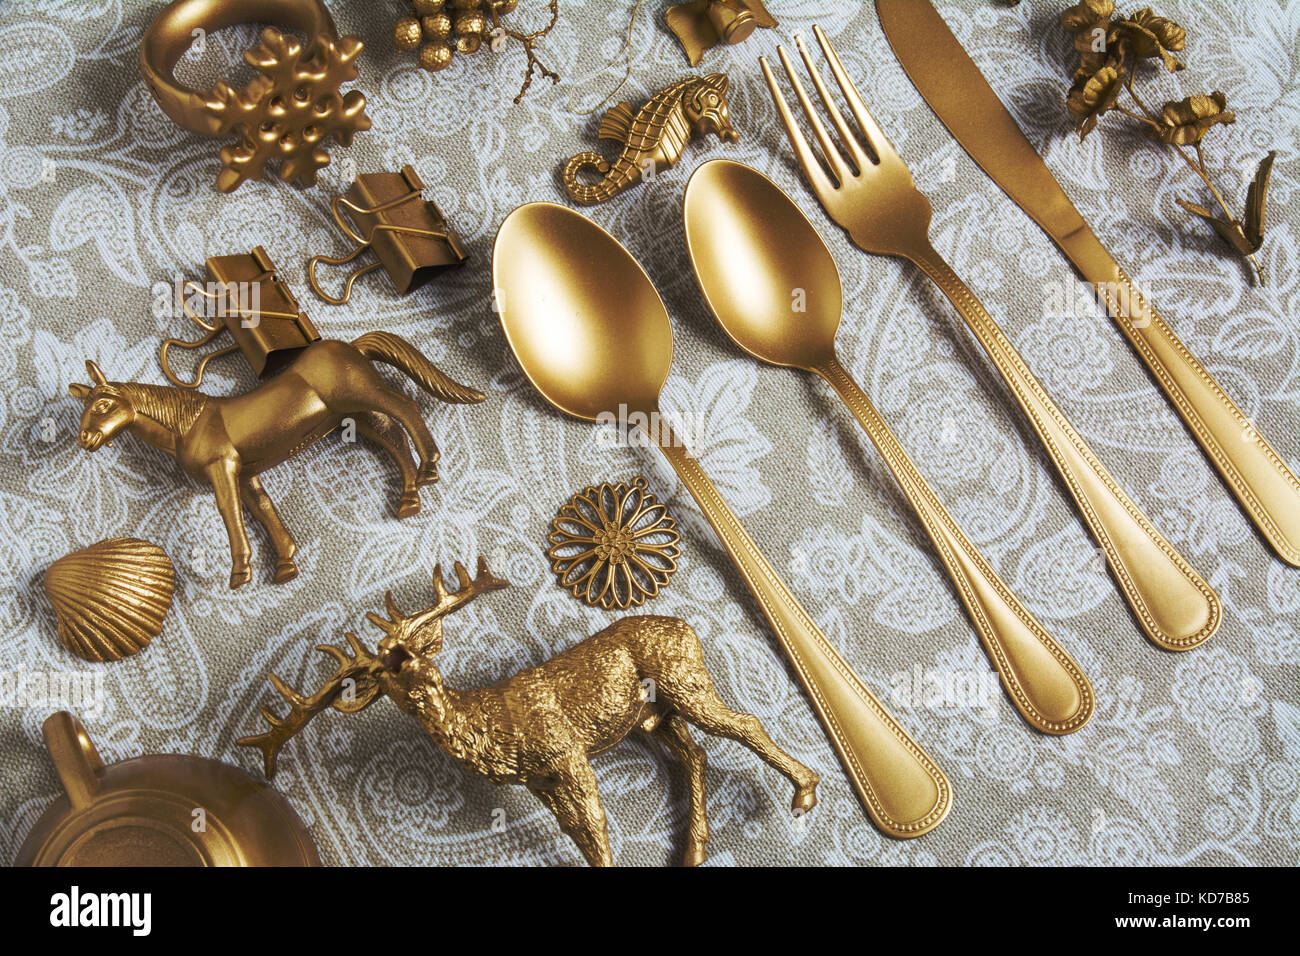 Gold cutlery and decorative Christmas ornaments - Stock Image